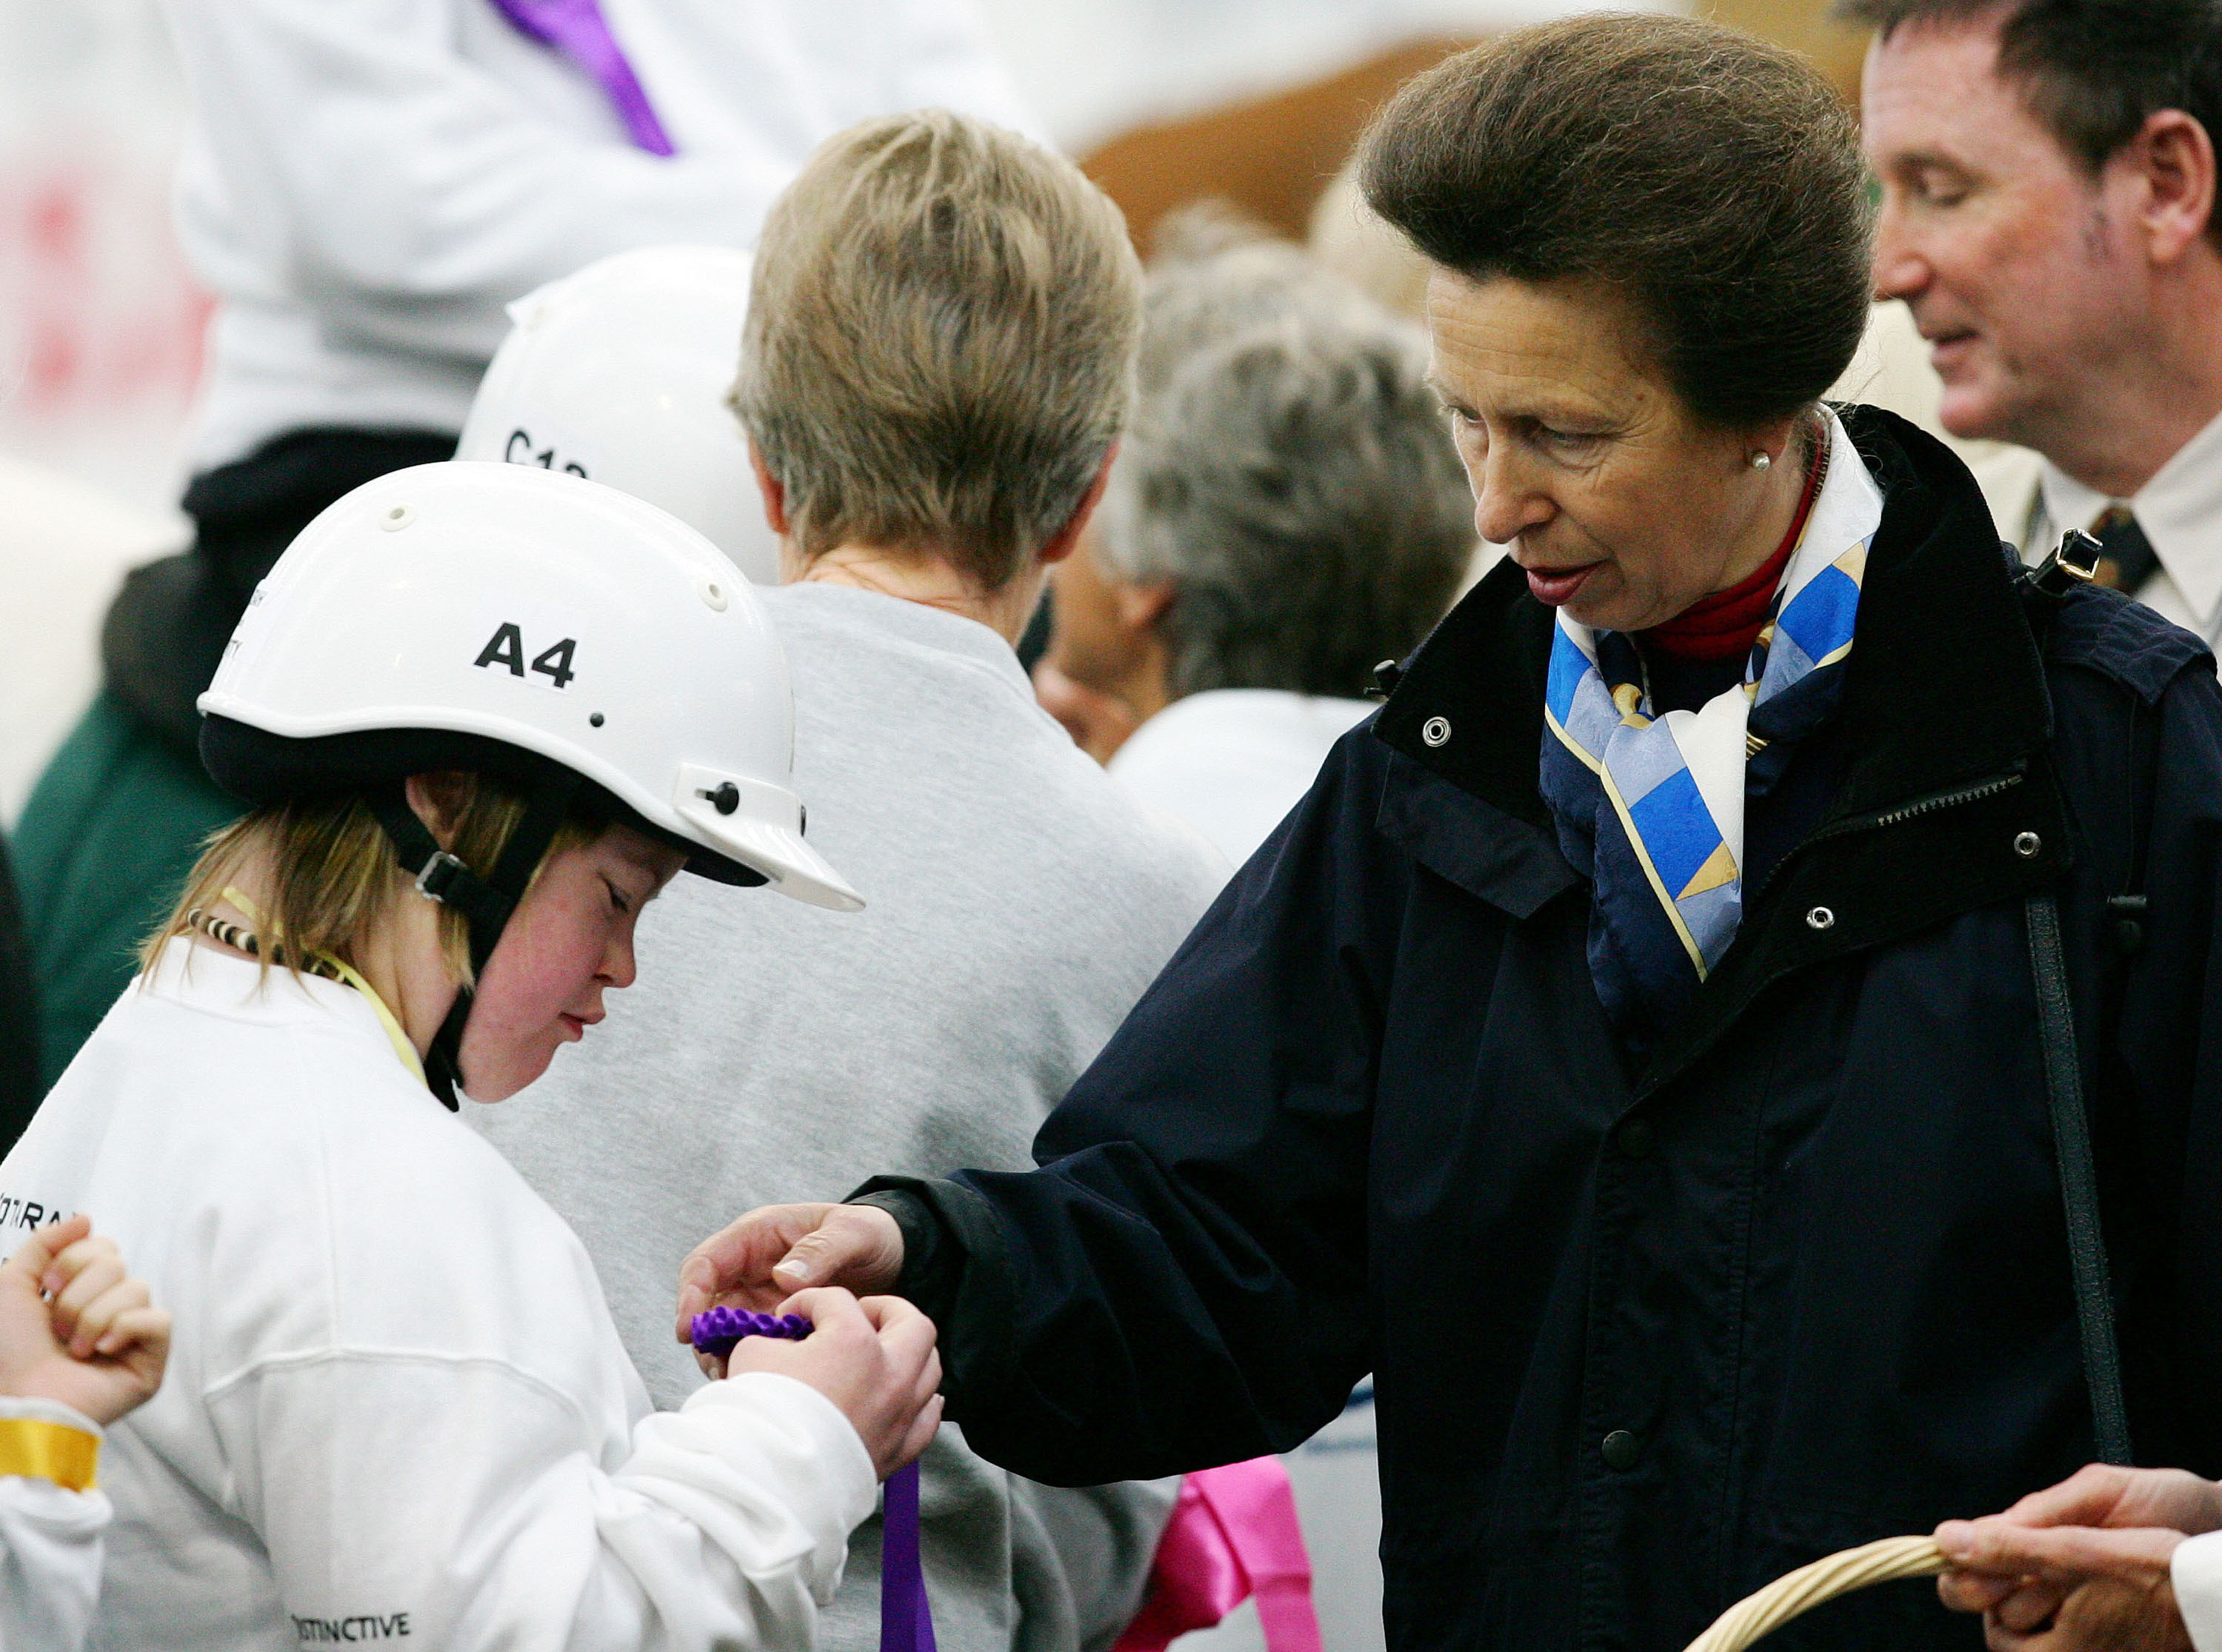 The Princess Royal presents ribbons to the children on her visit to the Ambury Park Centre for the Riding for the Disabled Groups' Ribbon Day at Mangere Bridge, Auckland, New Zealand, Wednesday, 2006.